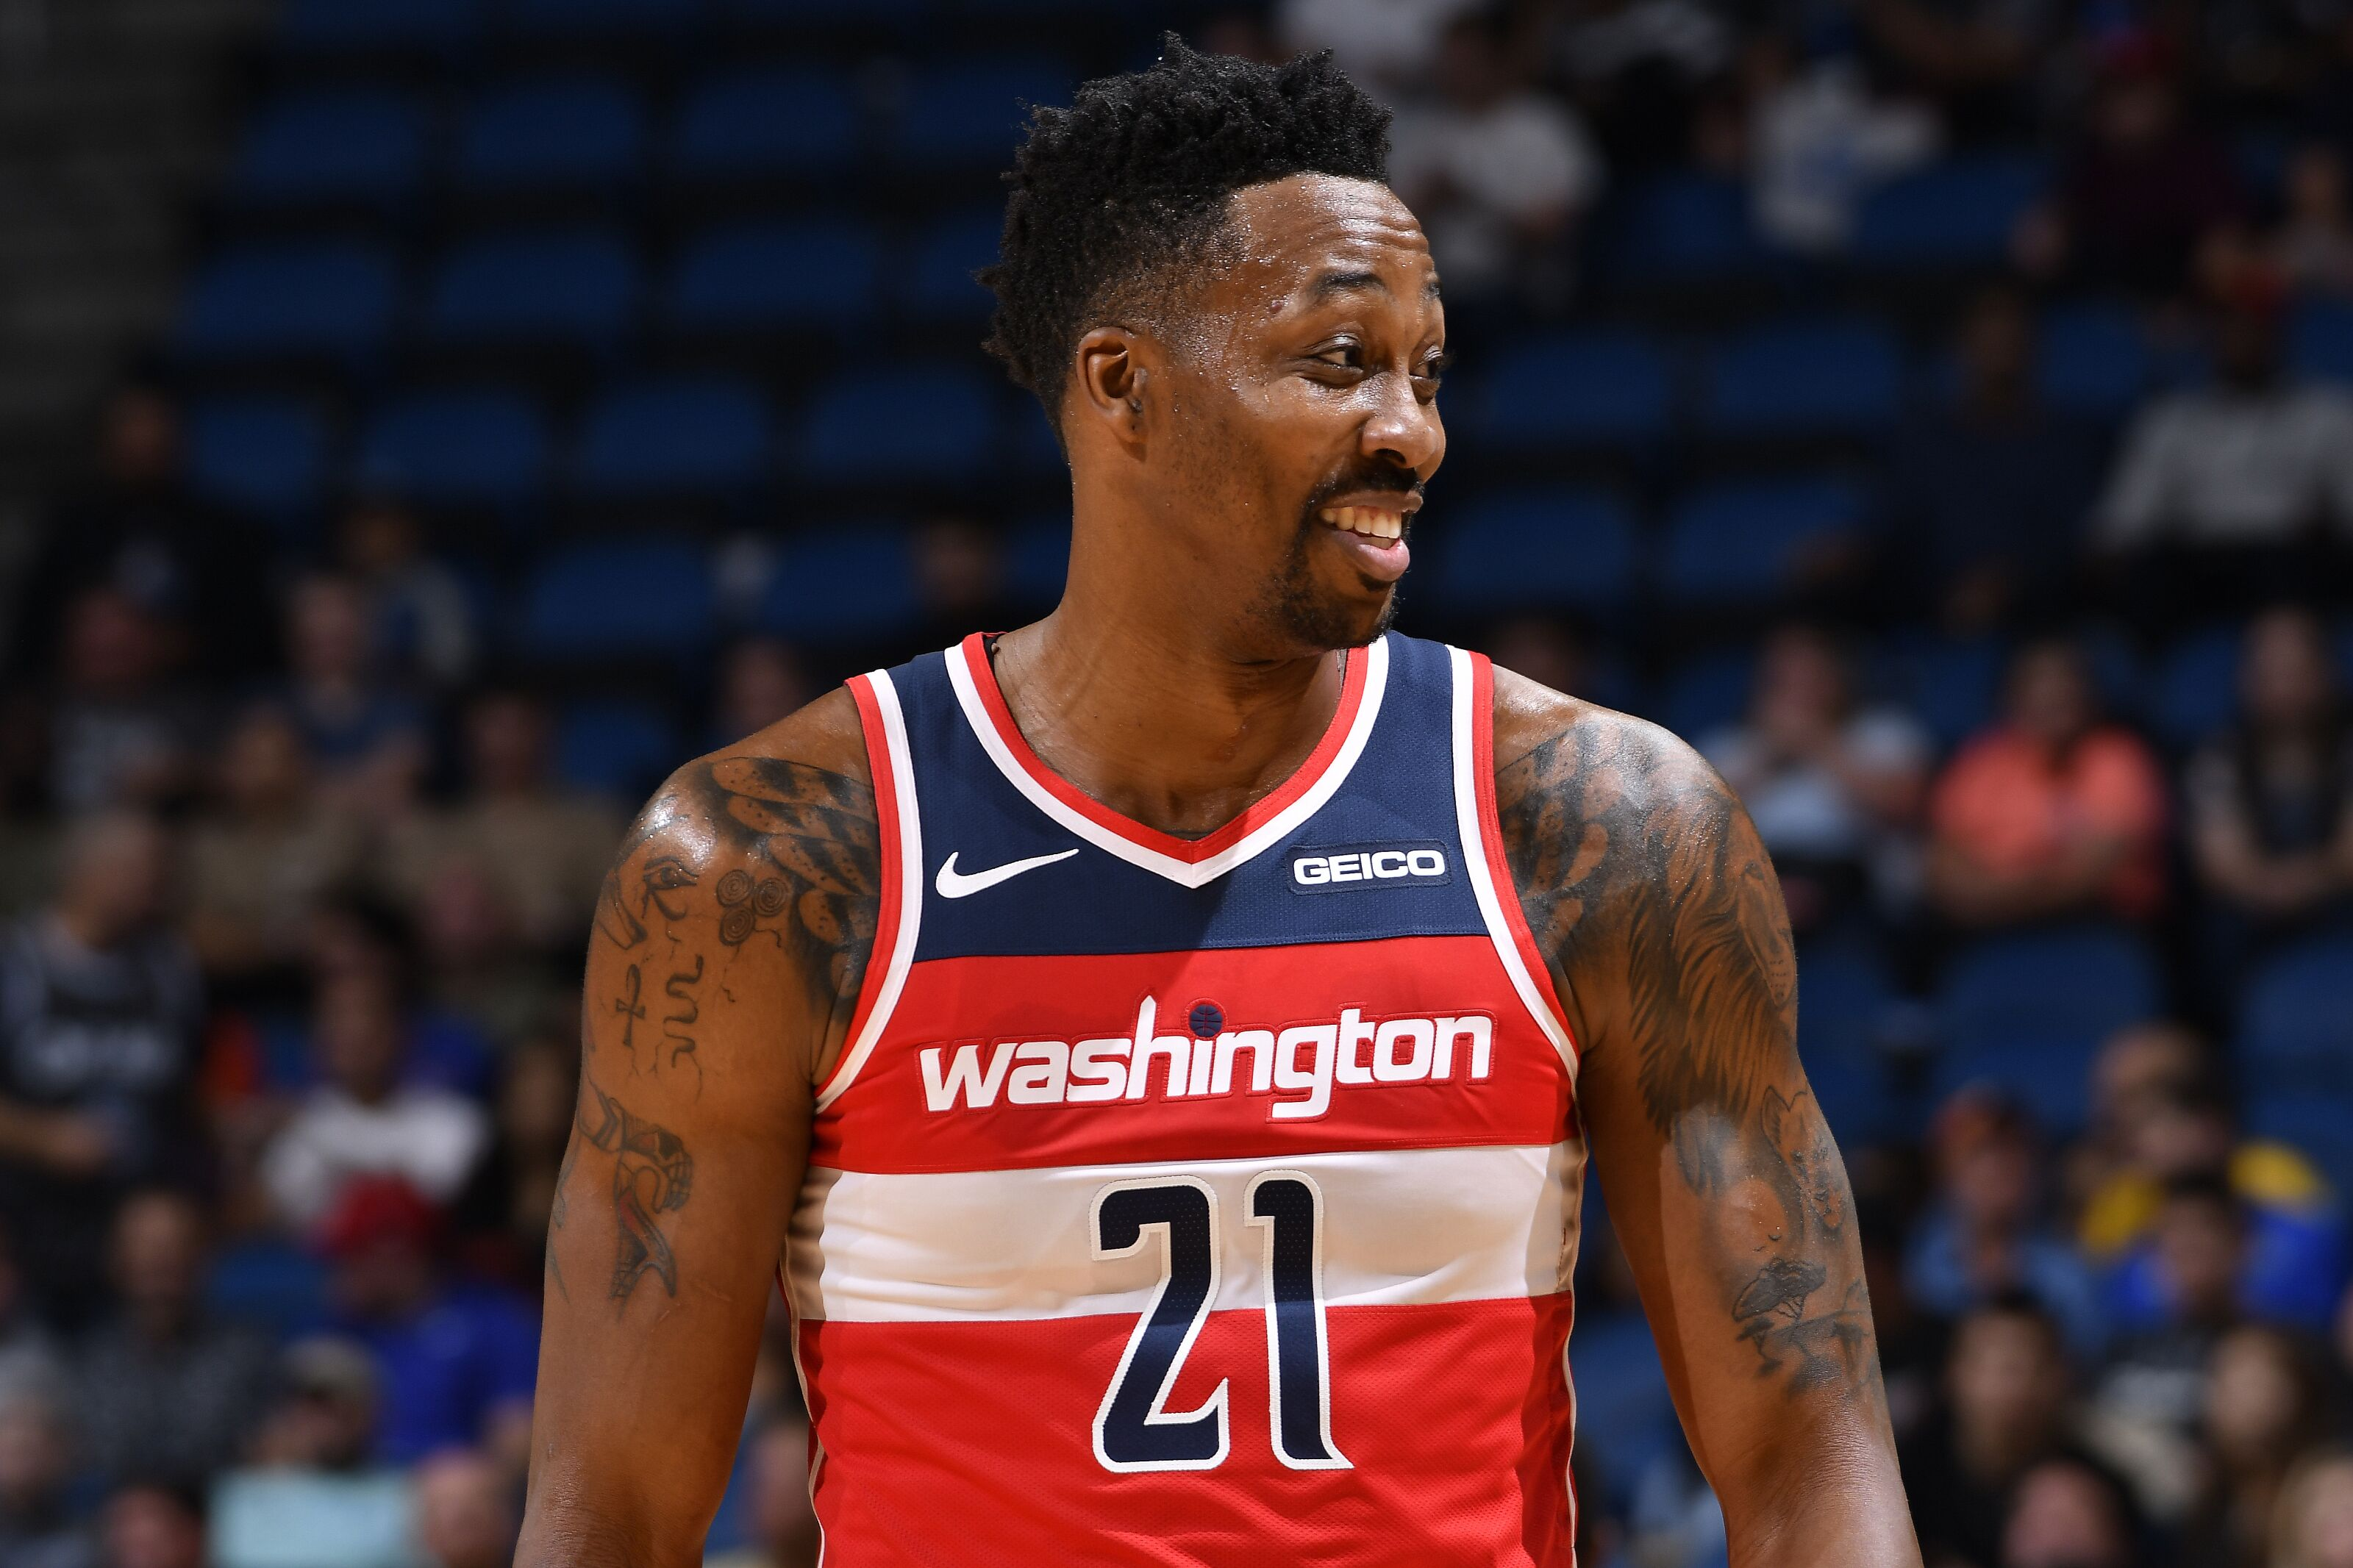 Lakers may land on Dwight Howard as Cousins replacement